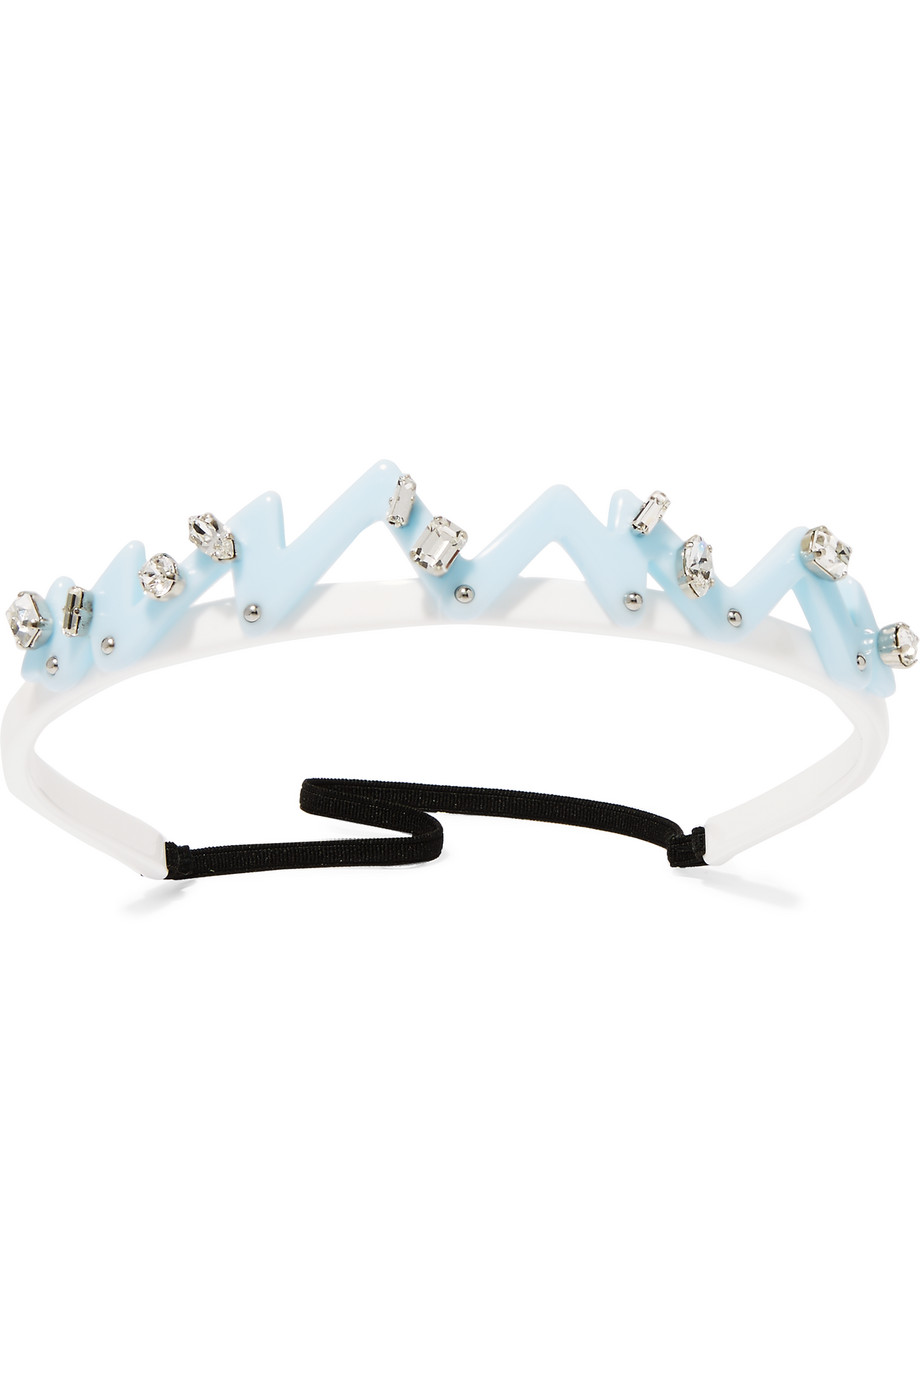 Miu Miu Swarovski Crystal and Stud-Embellished Perspex Headband, White/Blue, Women's